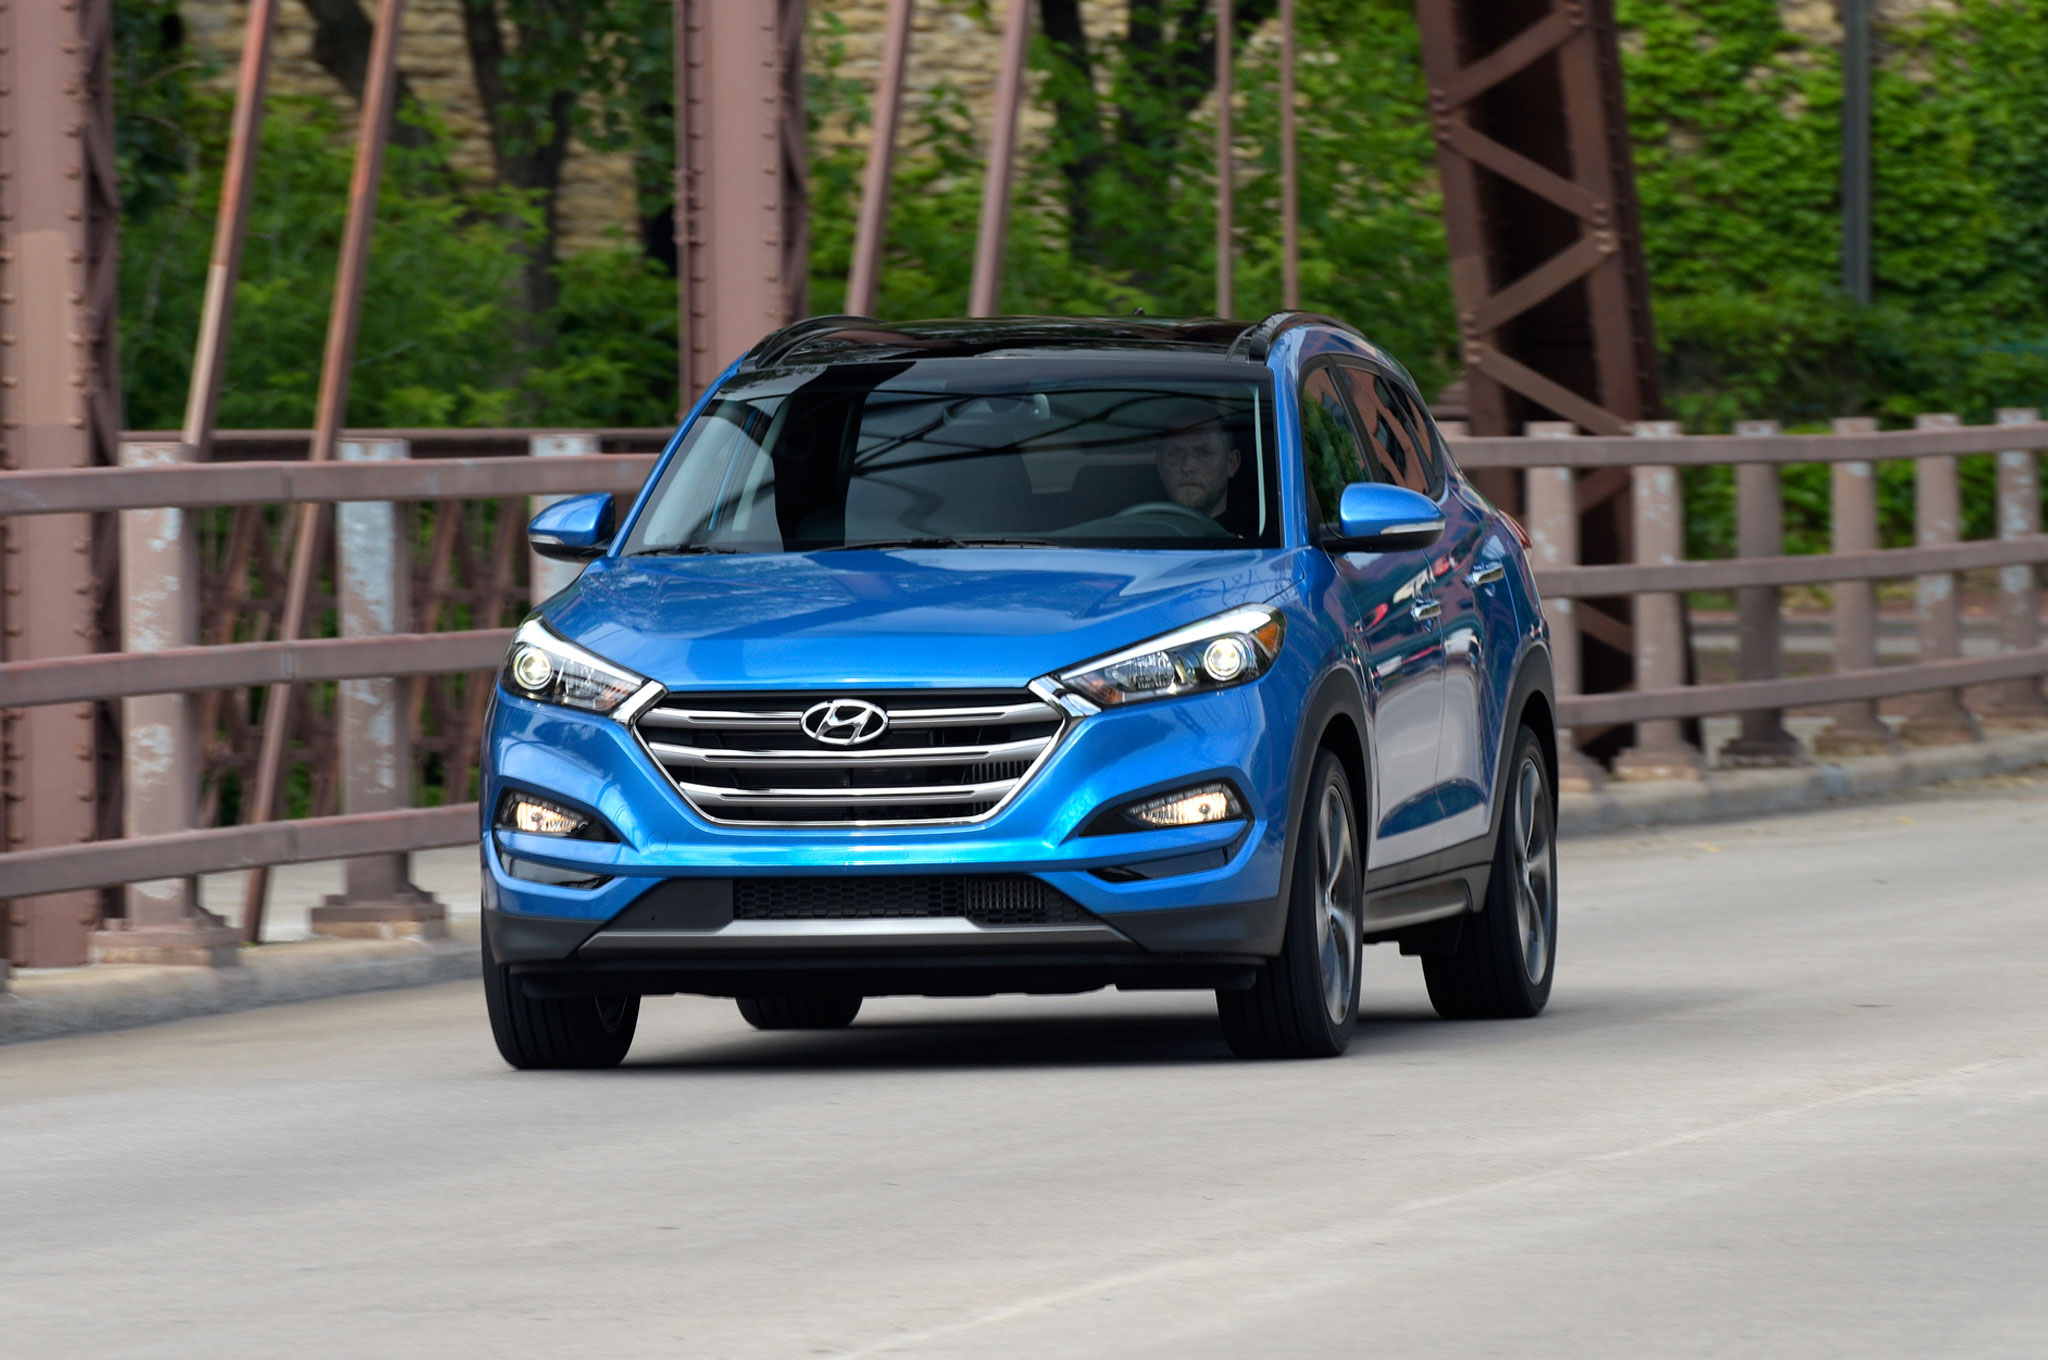 2016 Hyundai Tucson front three quarter in motion 10 the 10 most searched cars on google in 2015 4 Channel Amp Wiring Diagram at gsmportal.co